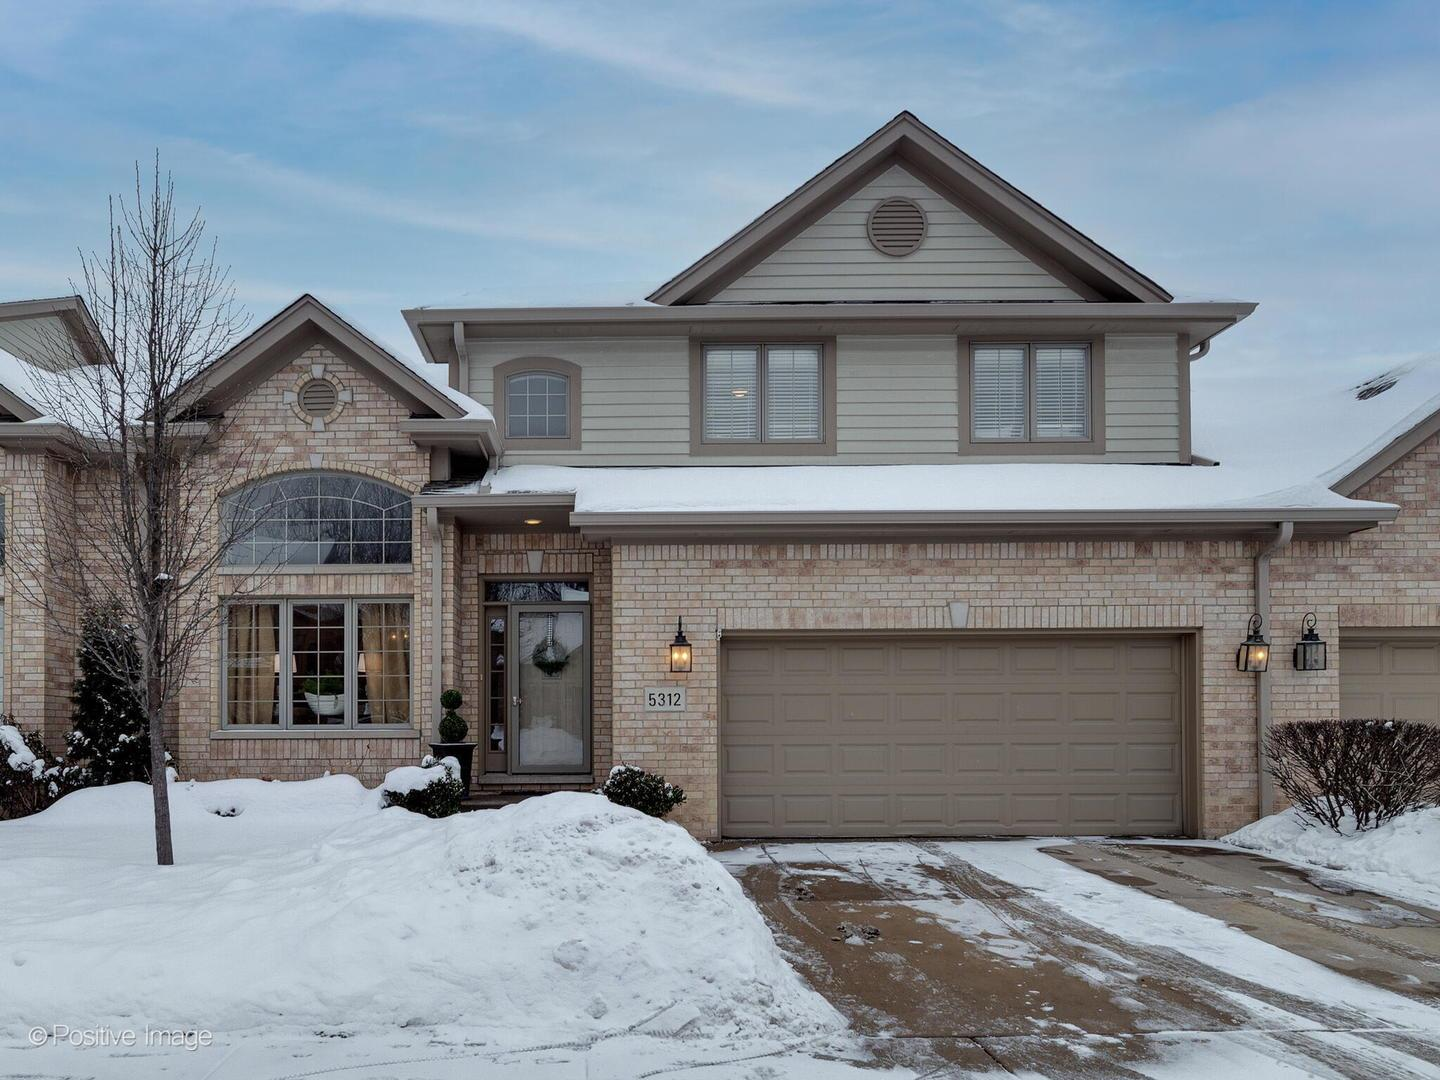 5312 Commonwealth Avenue, Western Springs, IL 60558 - #: 10999616